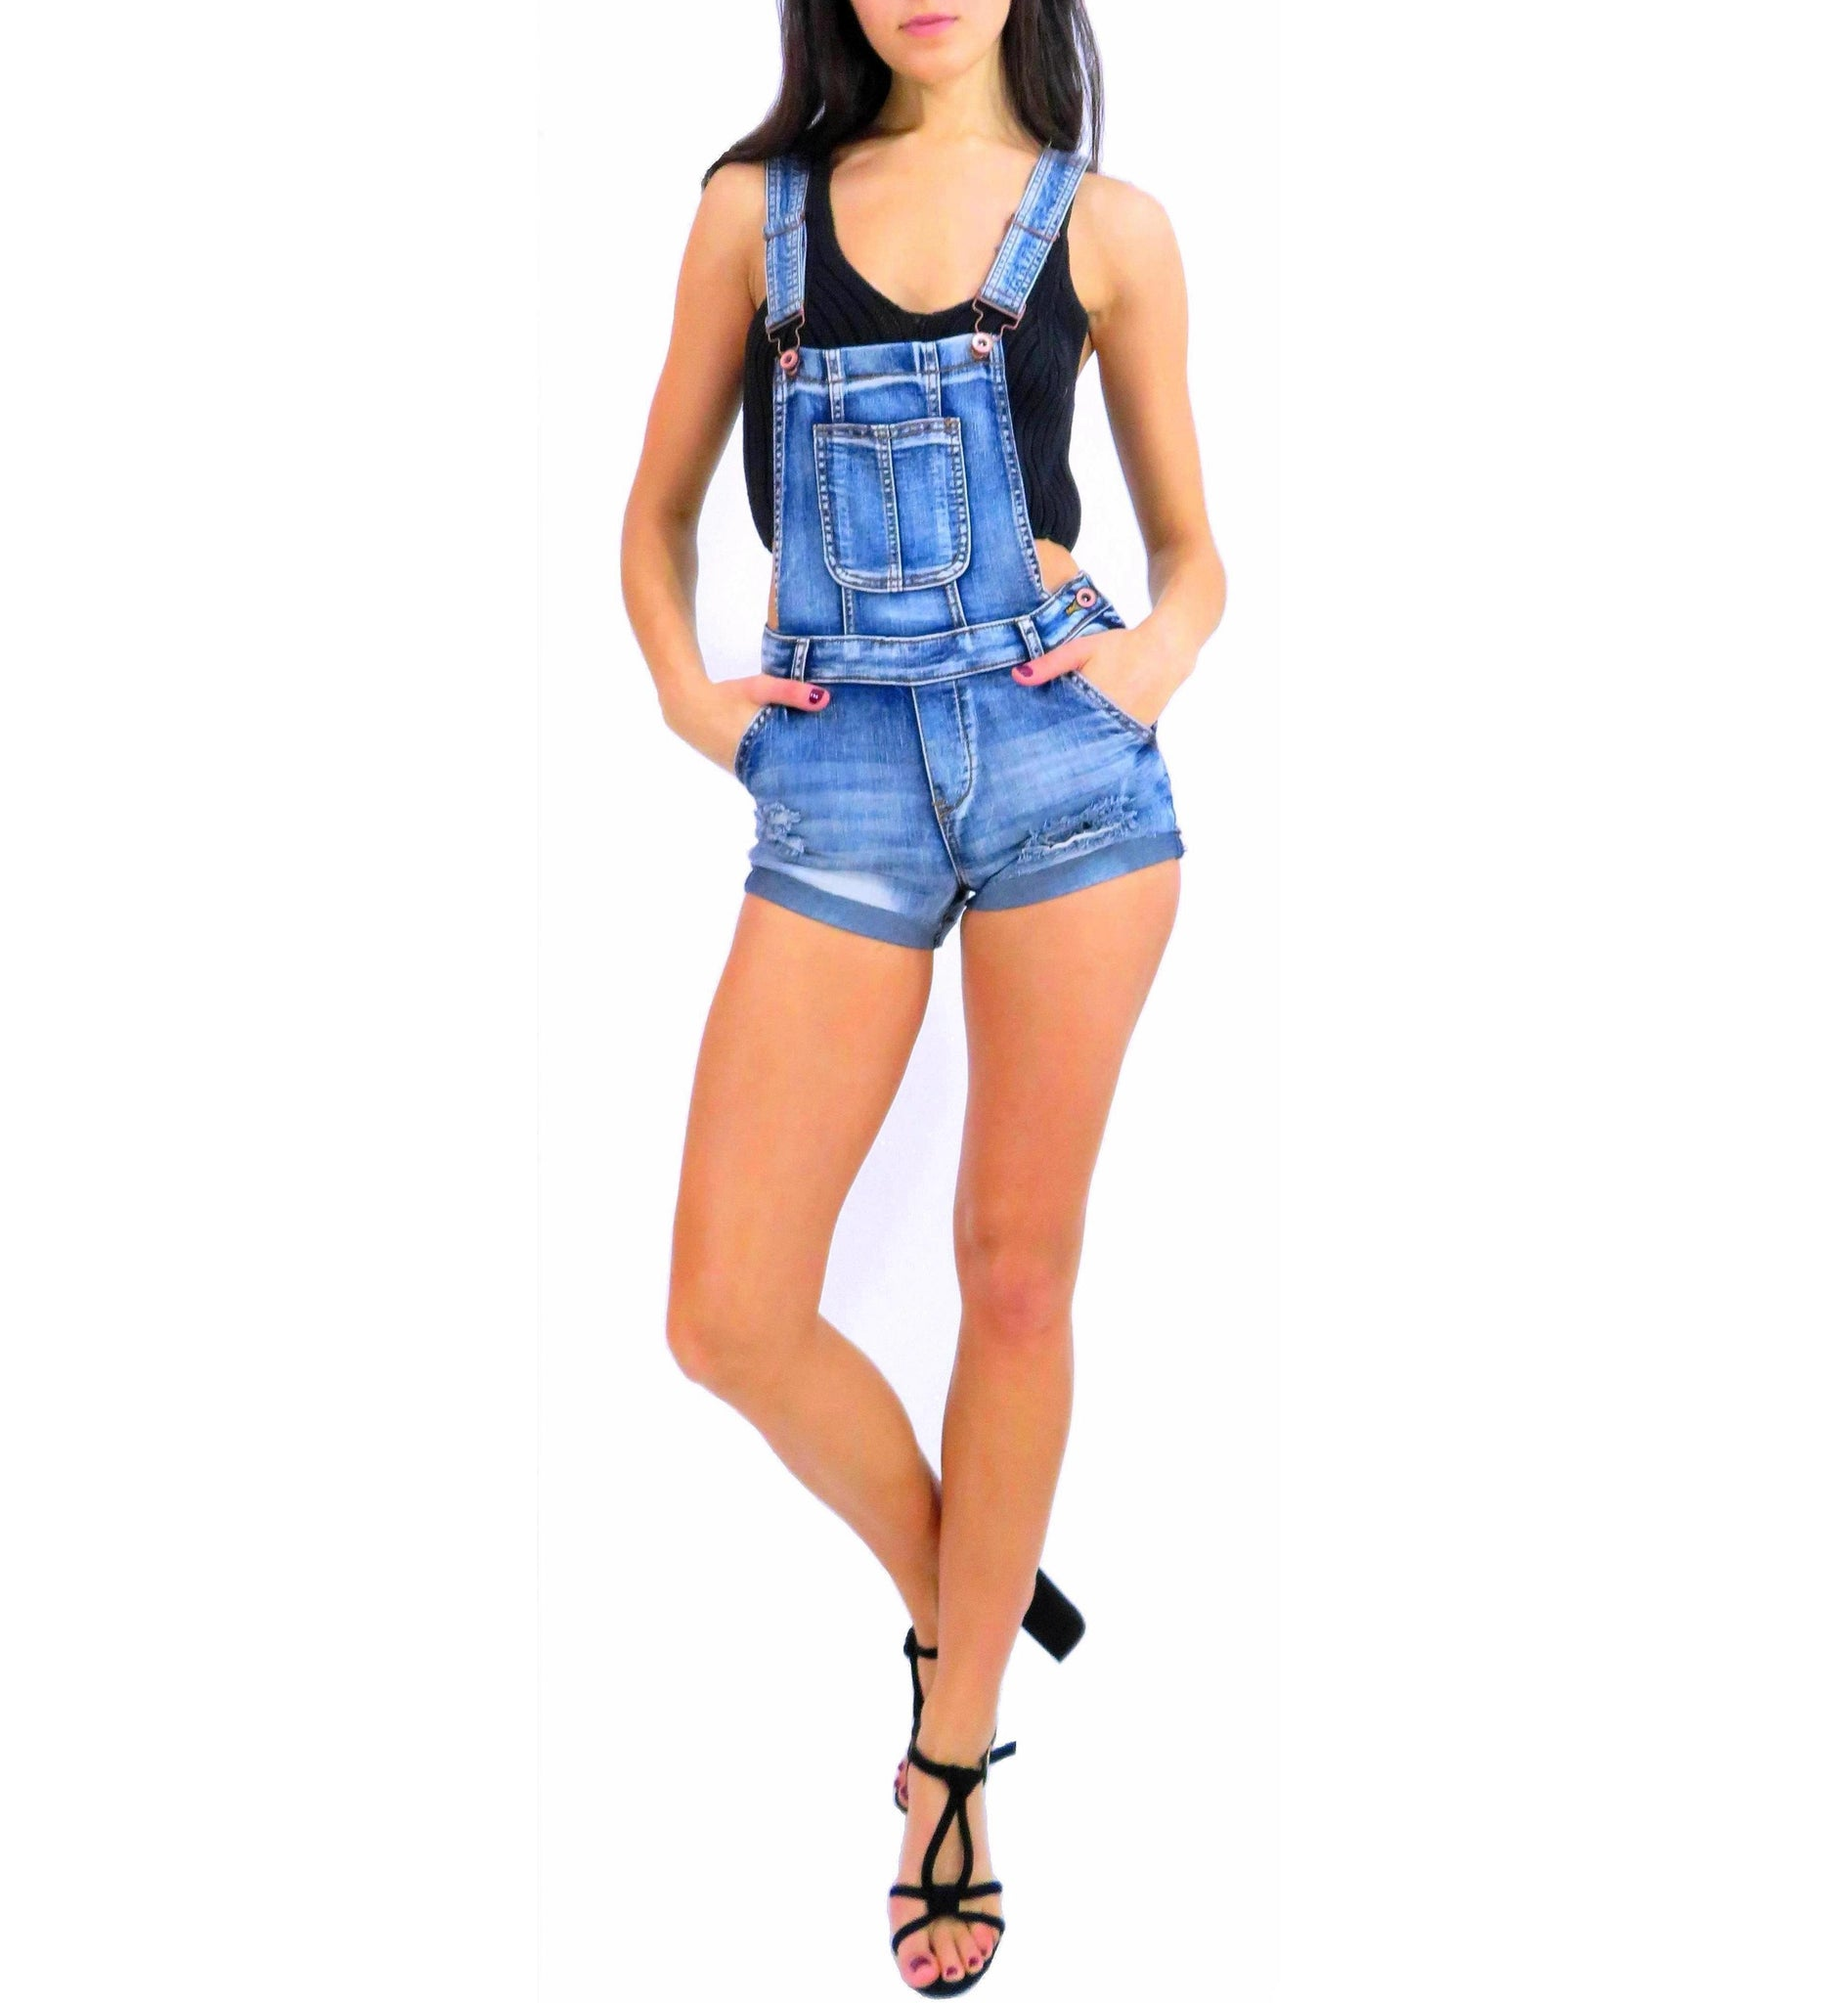 9641f9837011 Overall jean jumper the fashion outlet shop jpg 1890x2048 Jean jumper